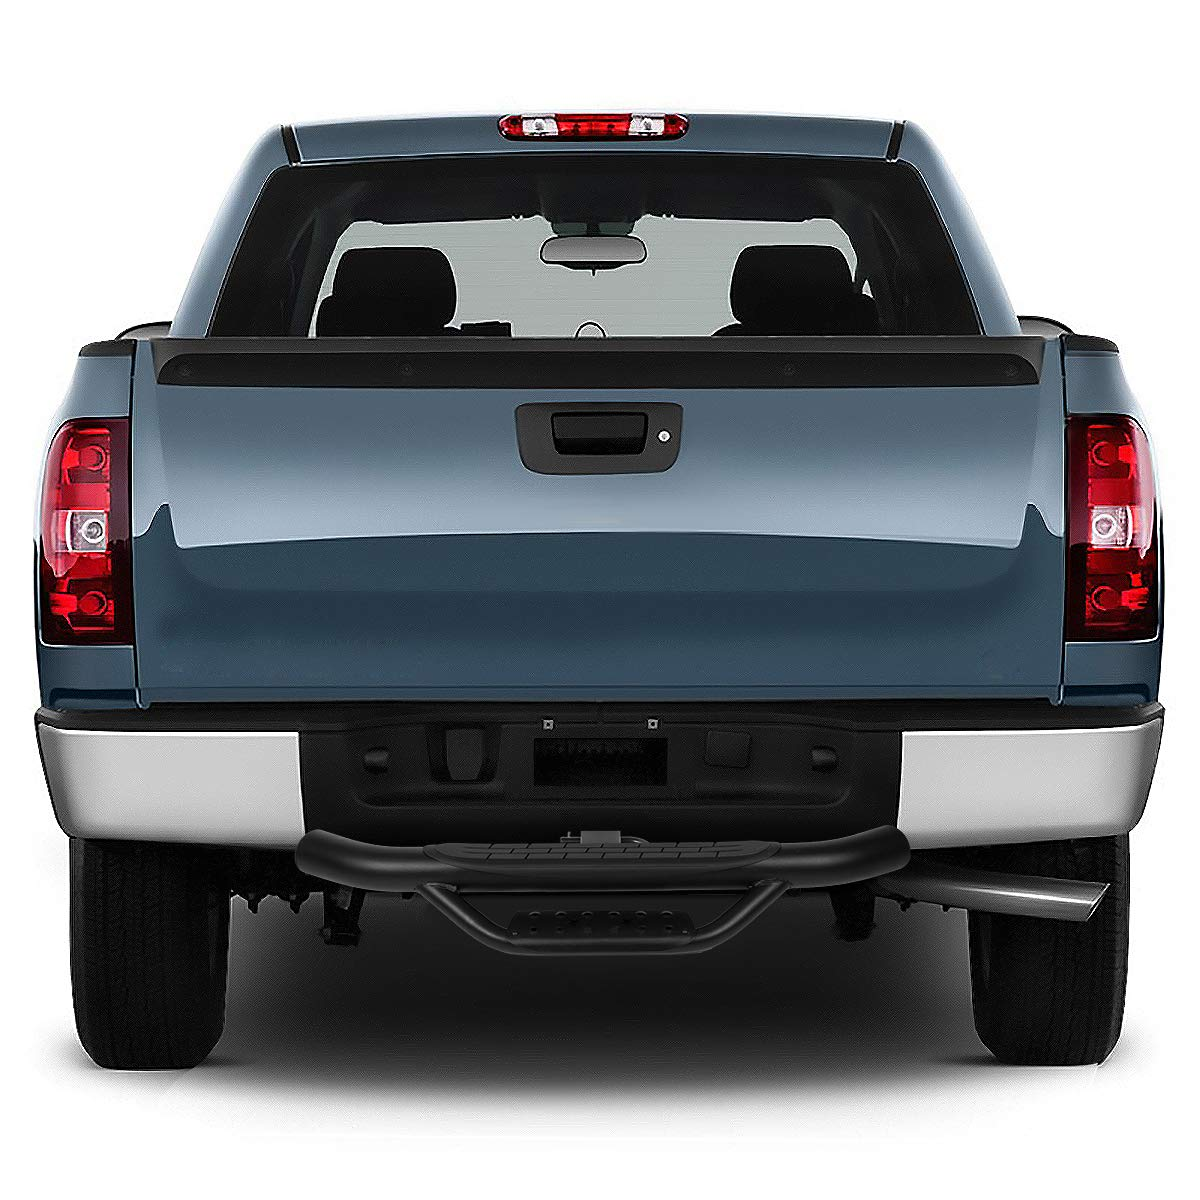 x 4 inches OD Powdercoated Steel 2 inchesReceiver Trailer Truck Towing Hitch Step Bar Rear Bumper Guard W Universal 36